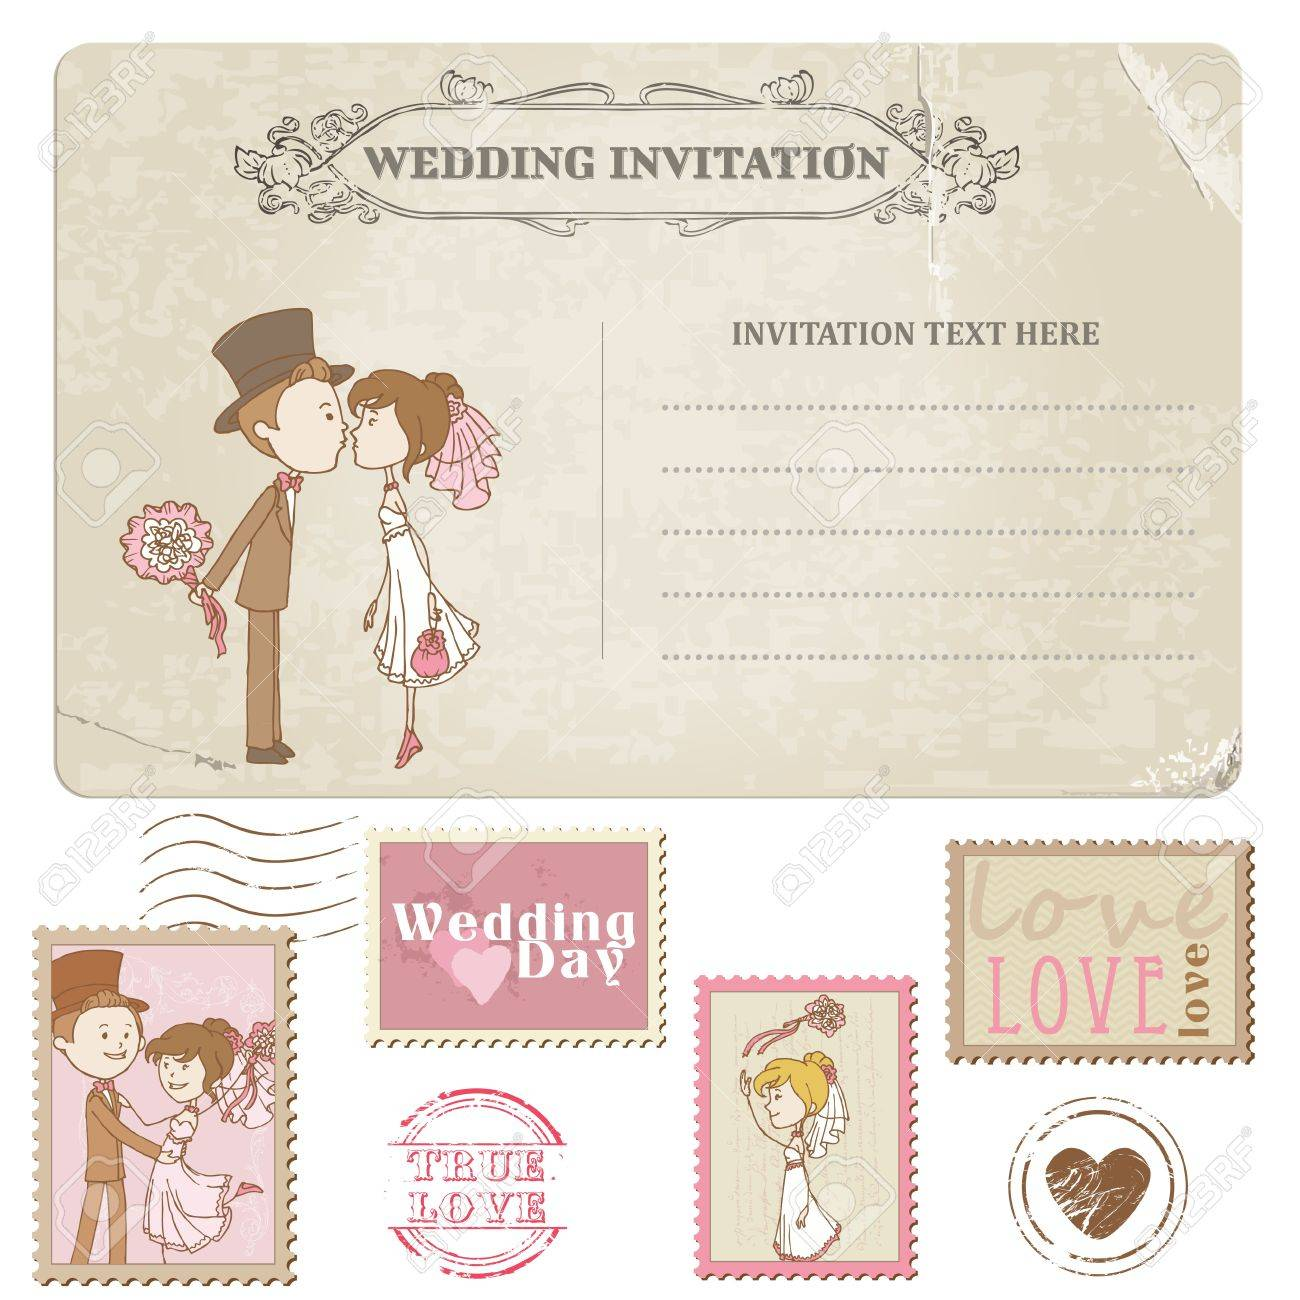 Wedding Postcard And Postage Stamps For Wedding Design